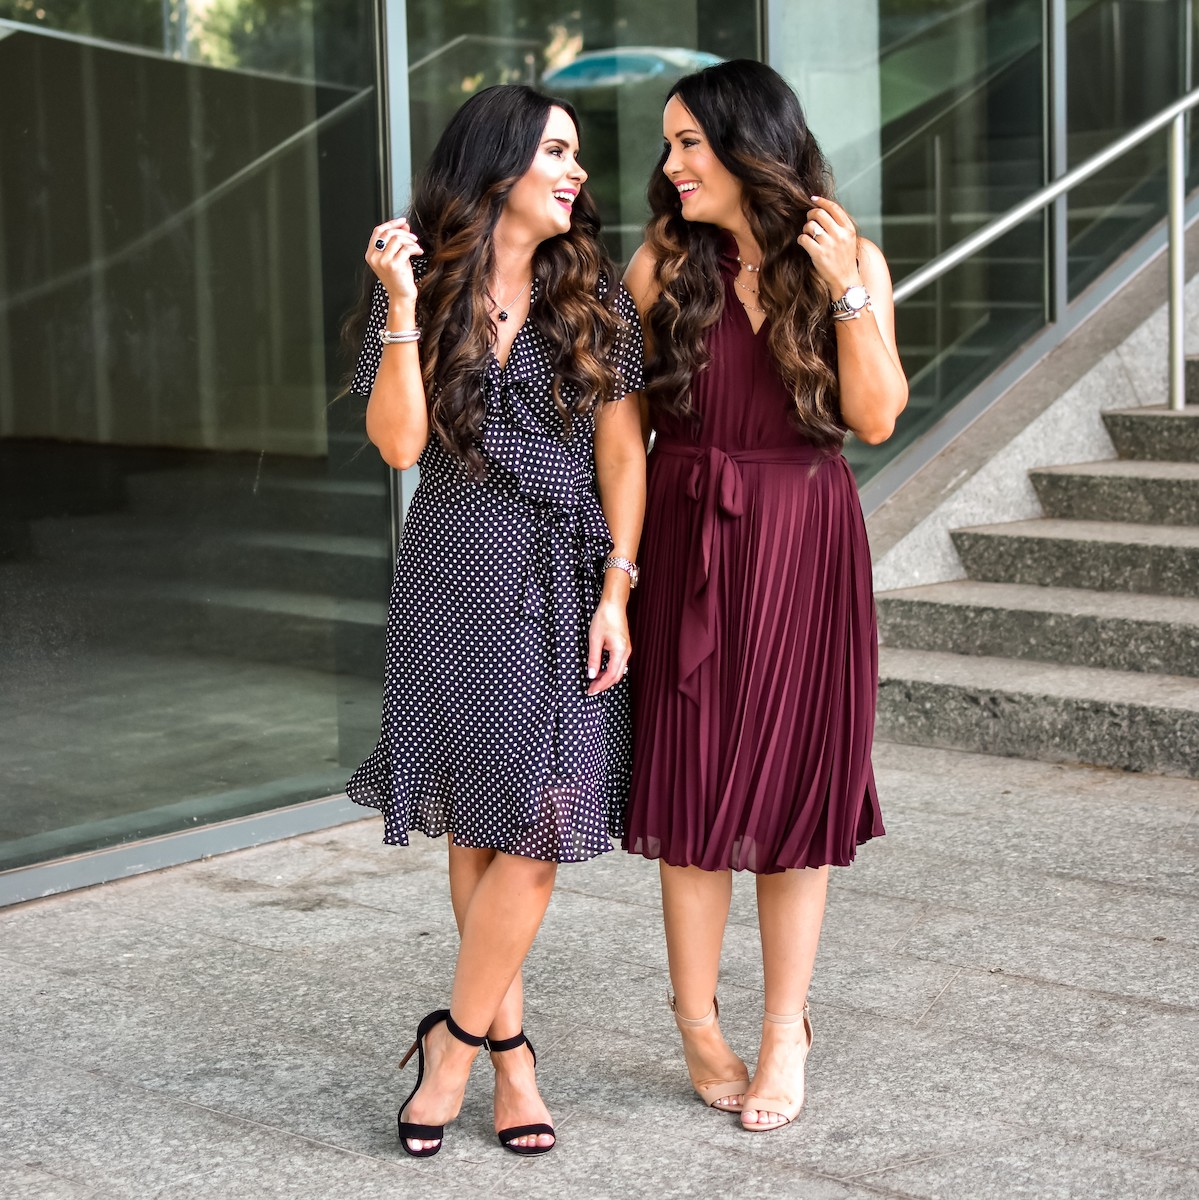 Nine Style Influencers to Watch in OKC